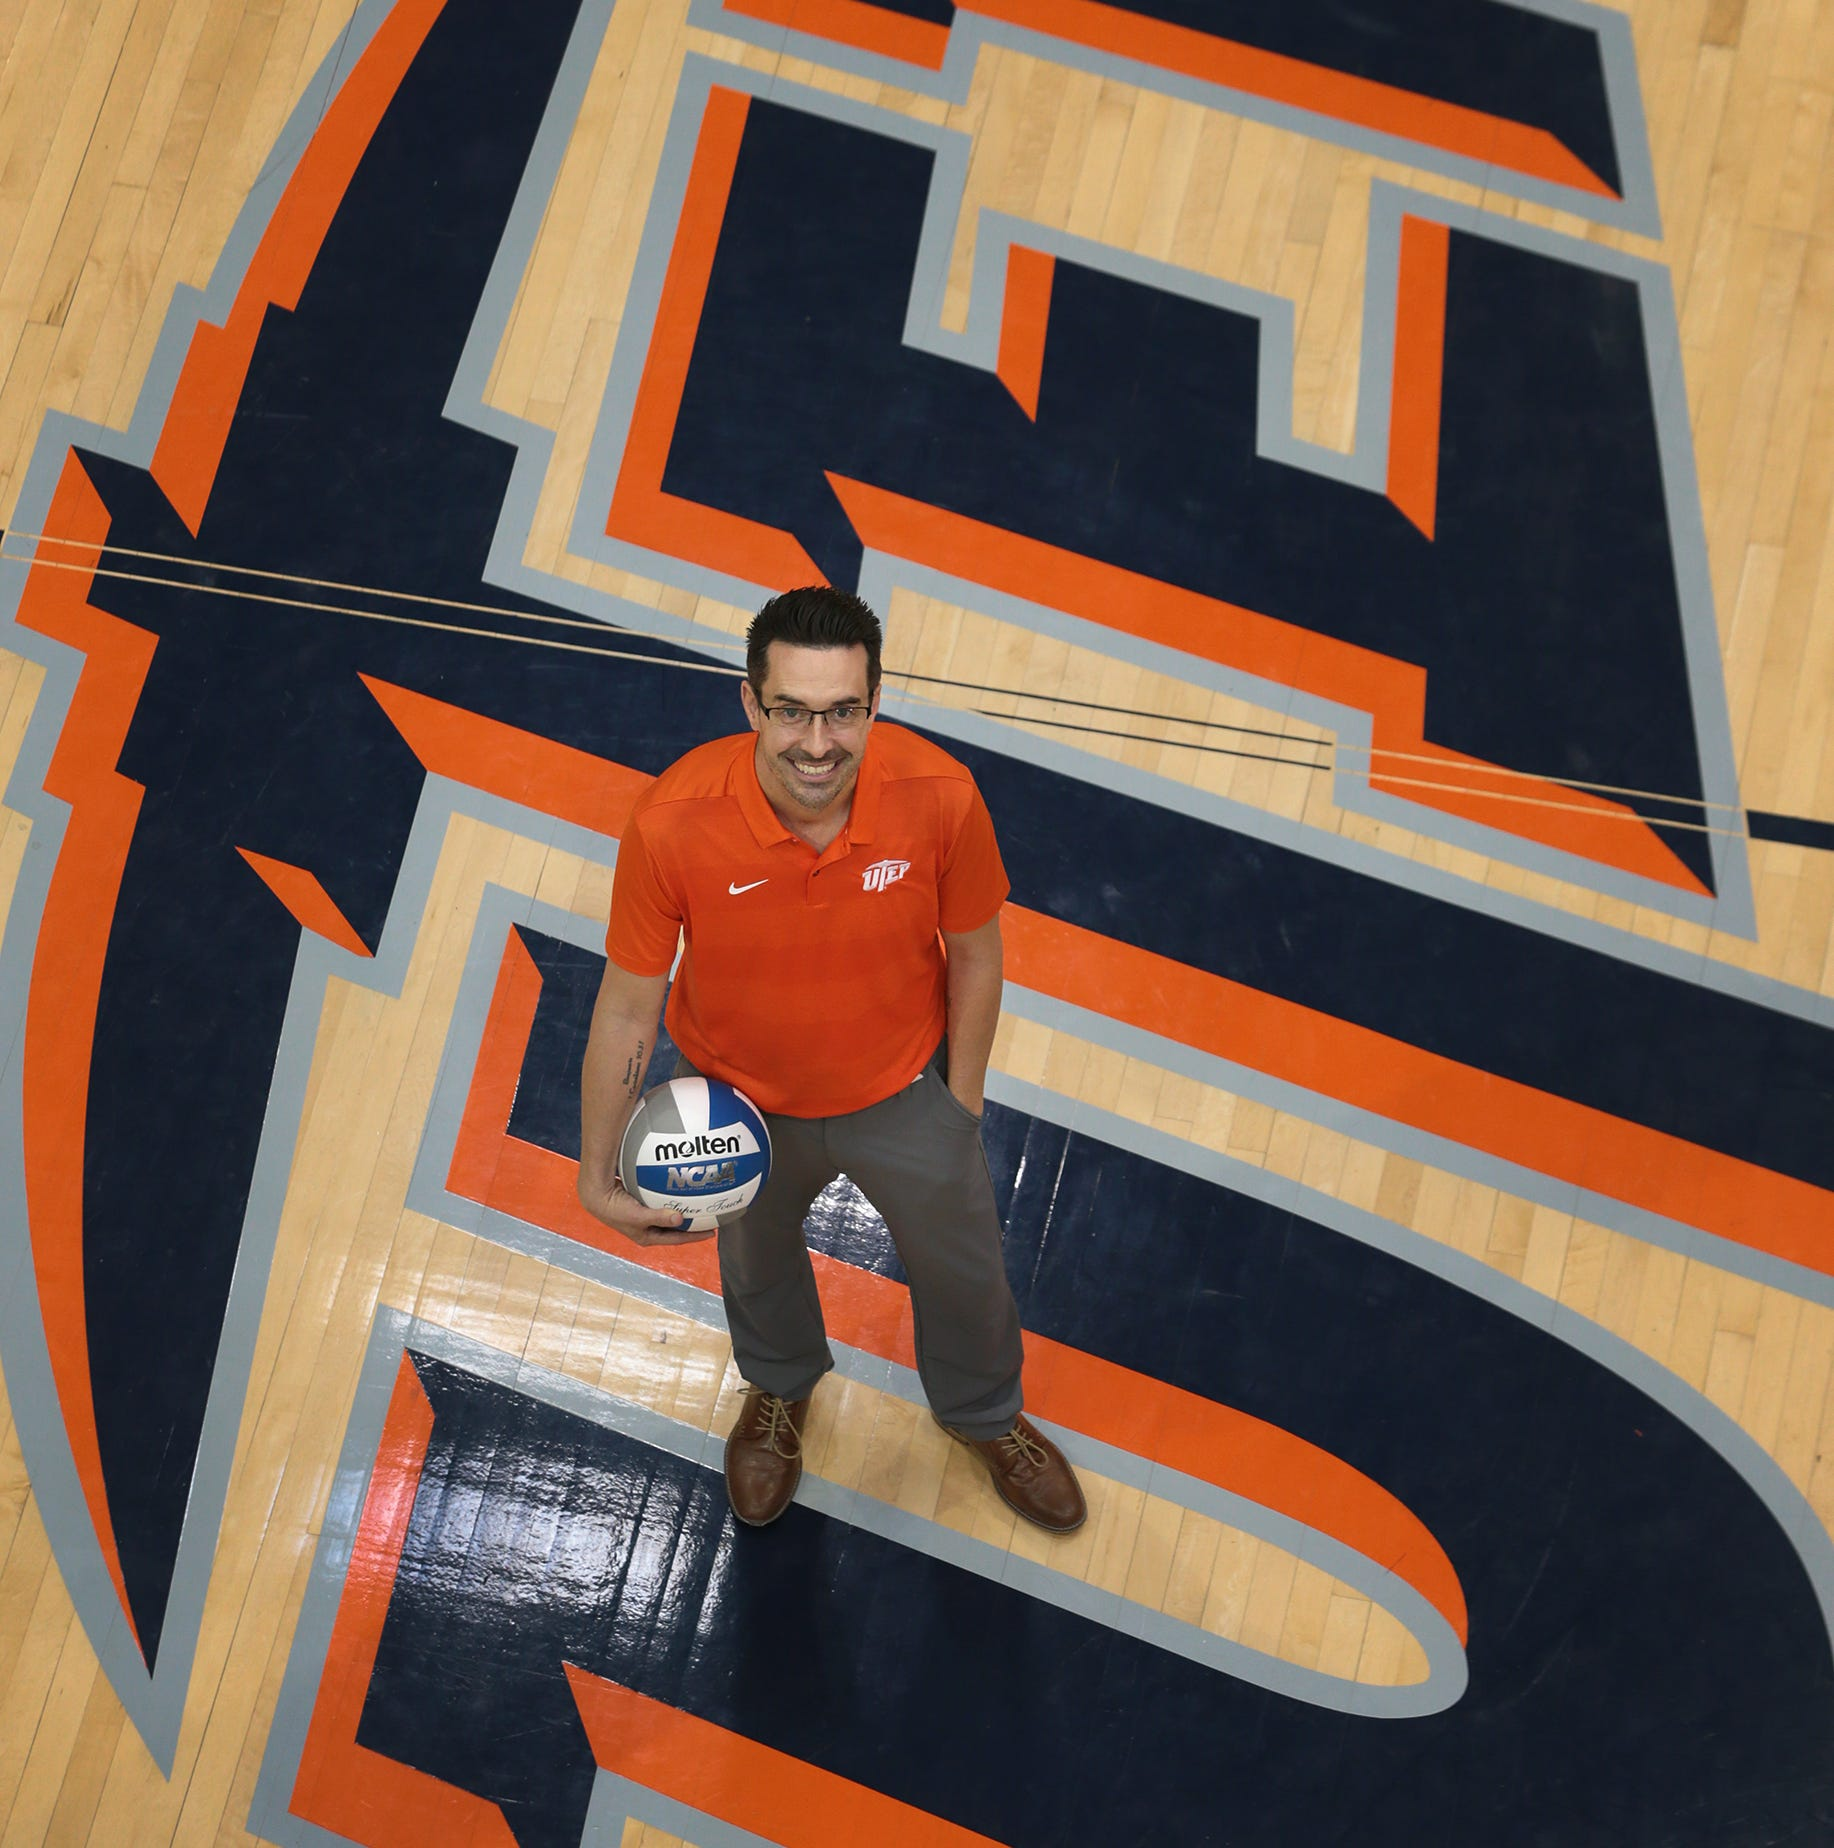 UTEP's new volleyball coach Ben Wallis' roots in El Paso and New Mexico run deep